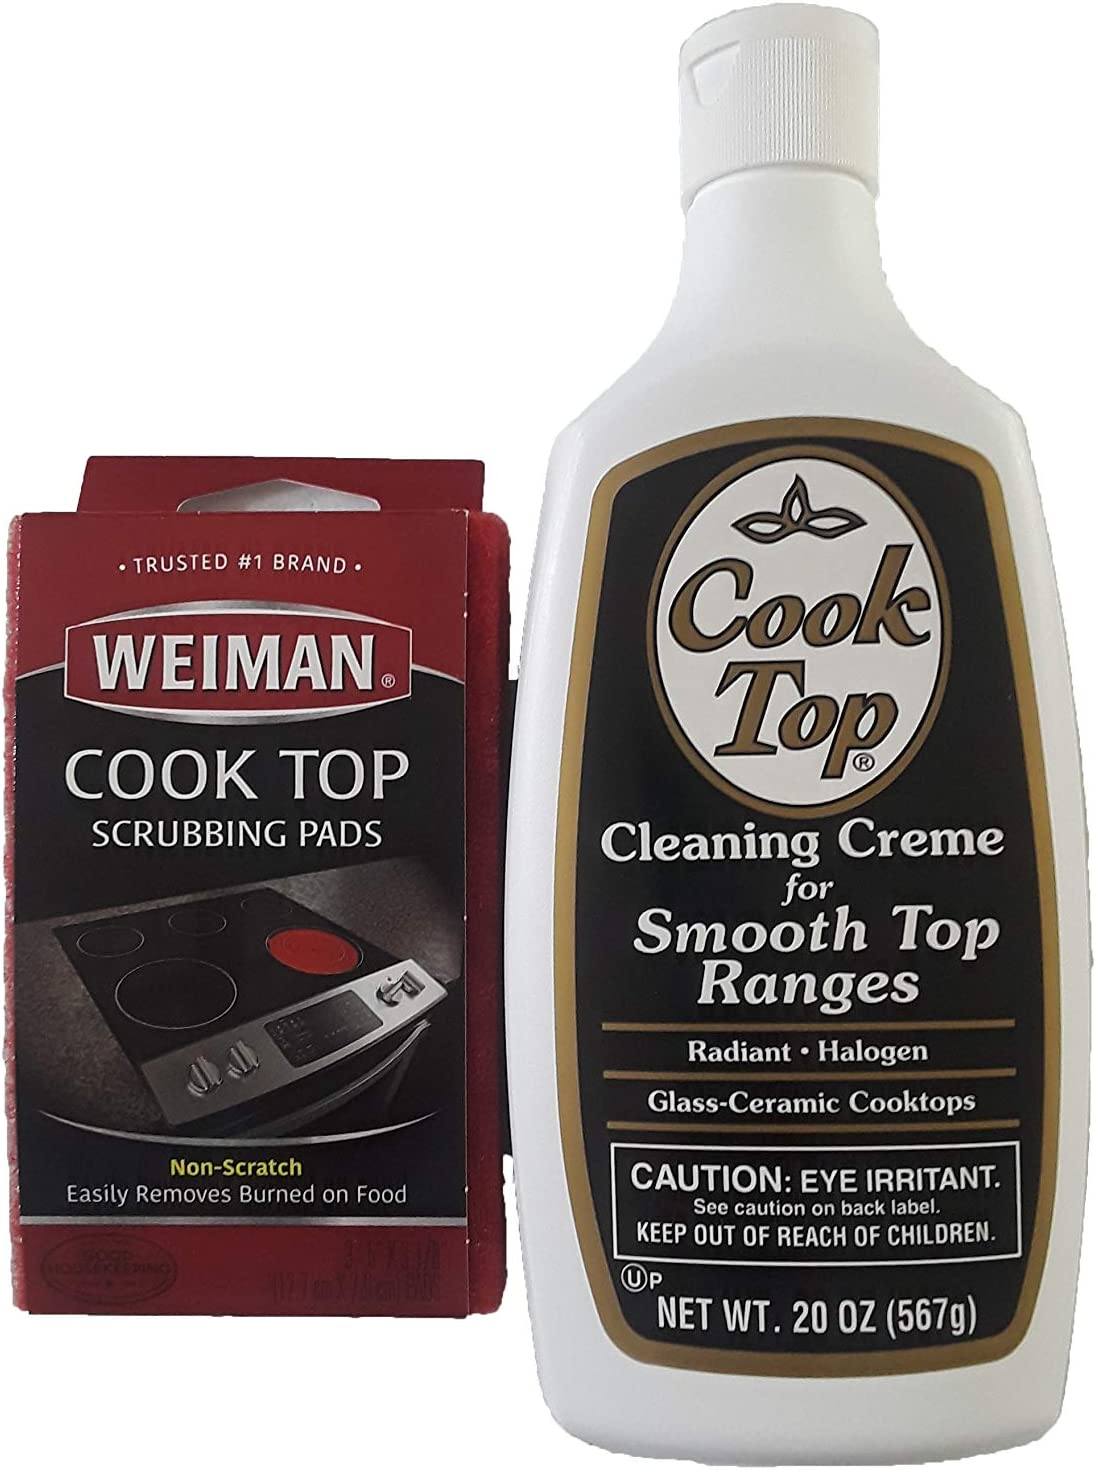 Smooth Top Ranges Cook Top Cleaning Creme, 20 oz + 1 Pack (3 scrubbers) of Non-Scratch Scrubbing Pads Bundle